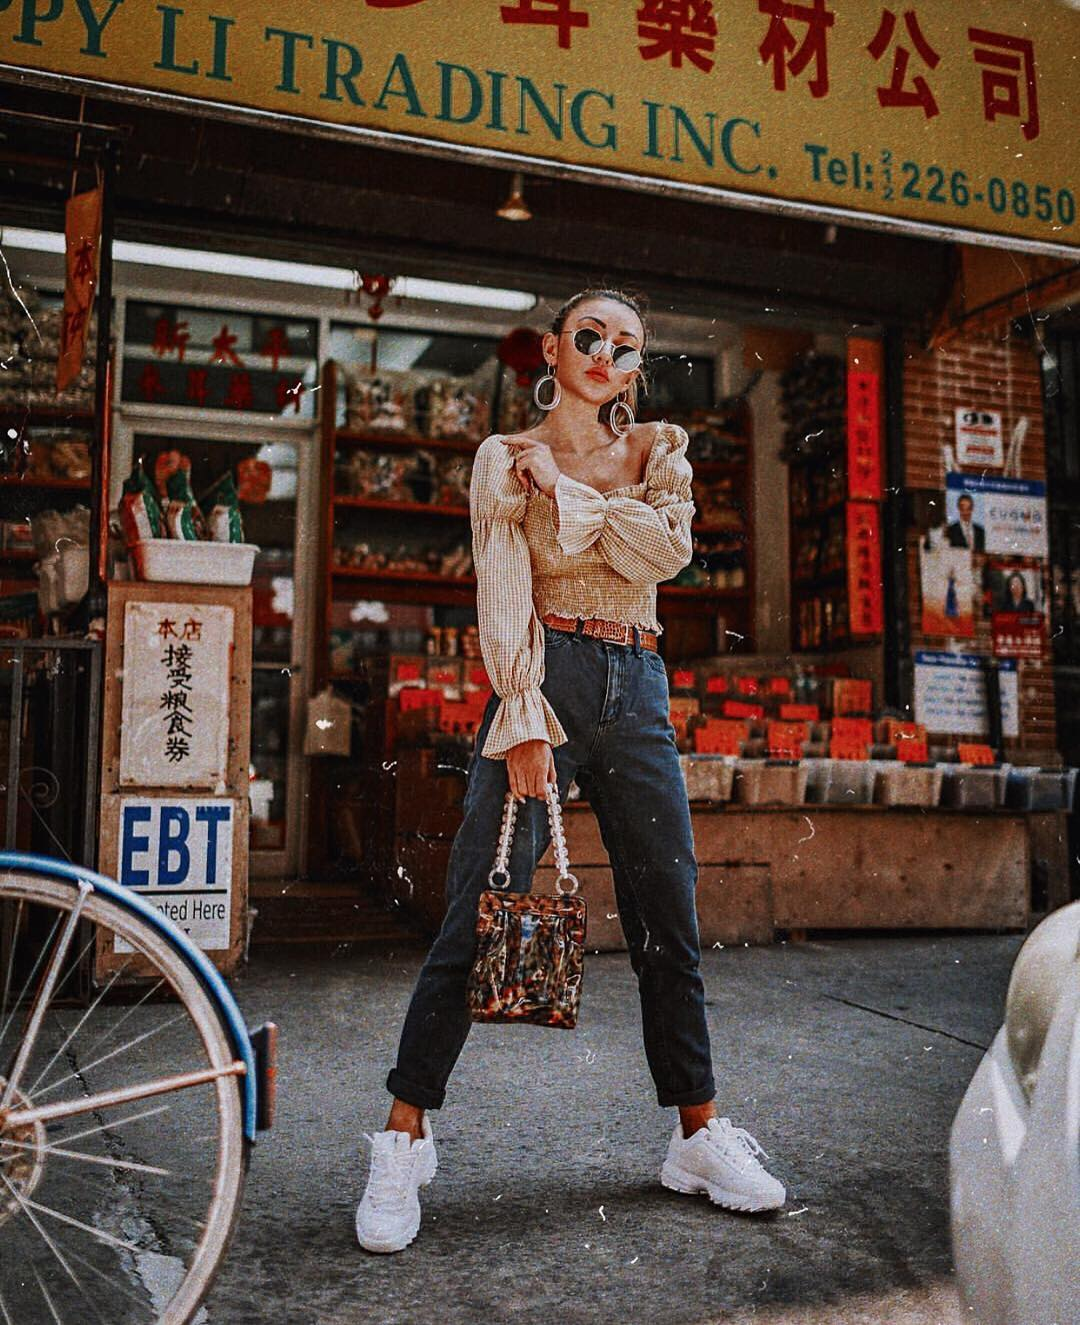 Puff Long Sleeve Blouse With Cuffed Jeans And White Sneakers For Spring 2019